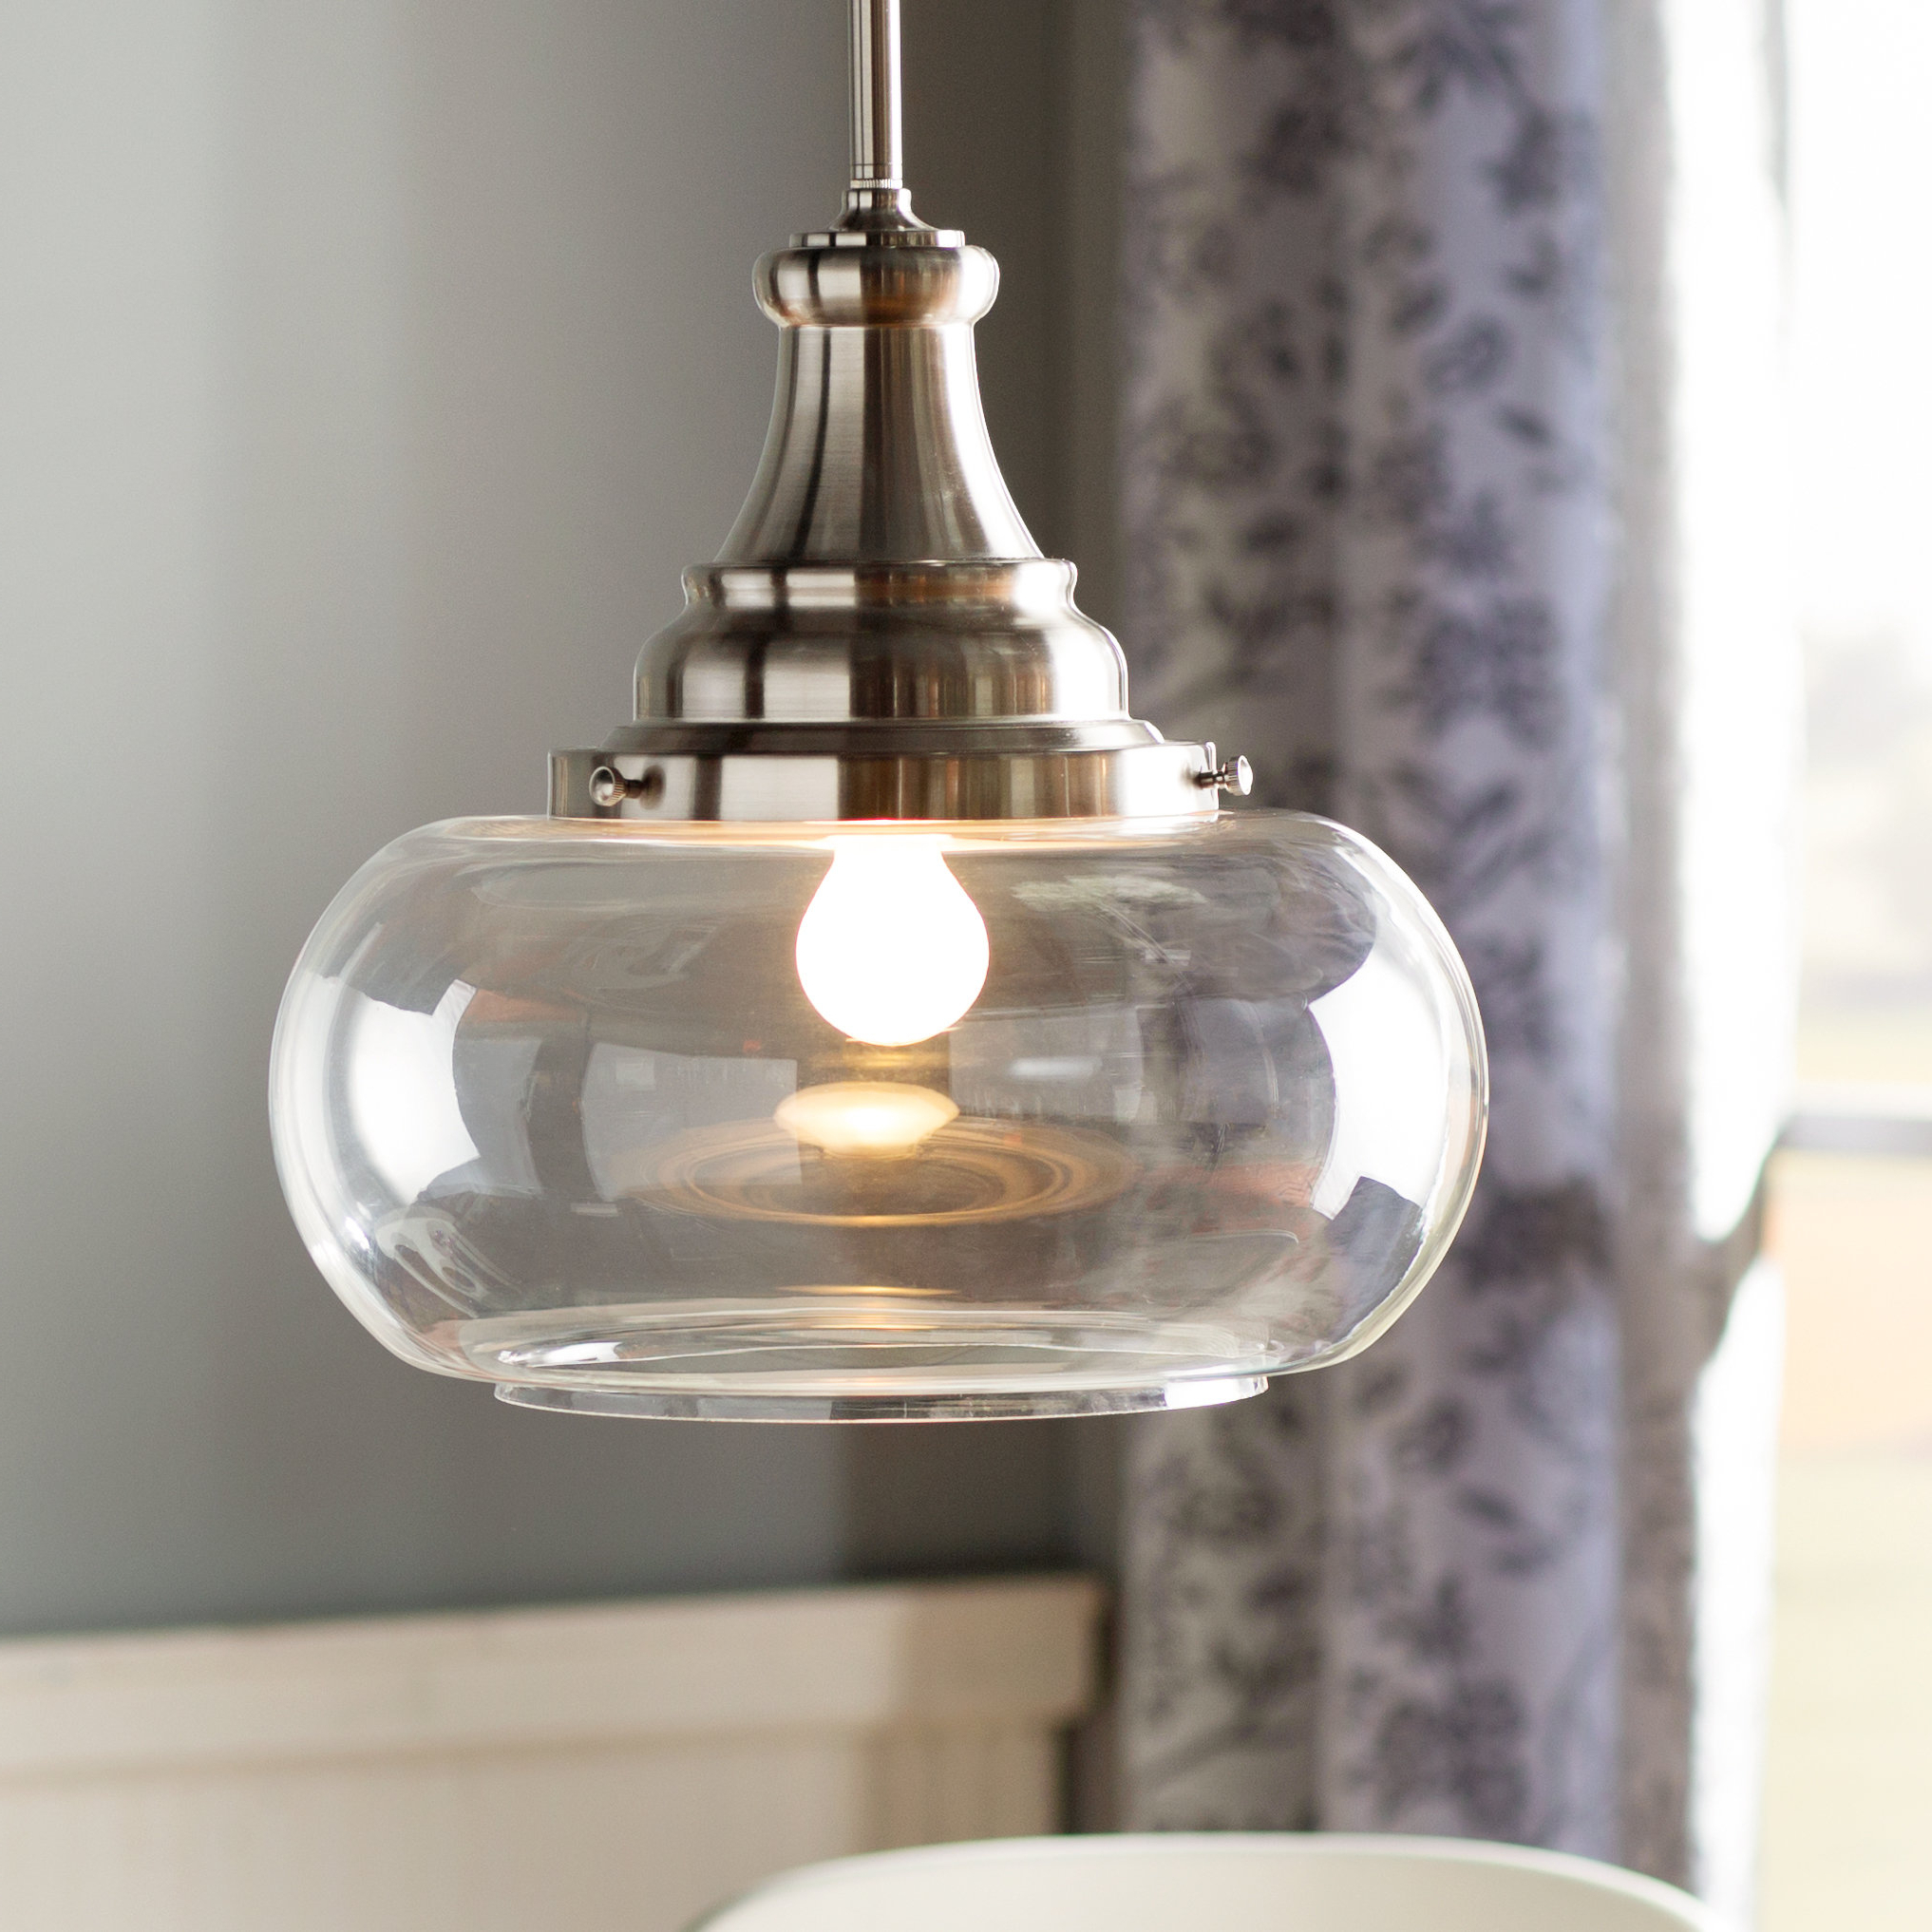 Abordale 1 Light Single Dome Pendants Throughout Fashionable 1 Light Single Dome Pendant (View 6 of 25)